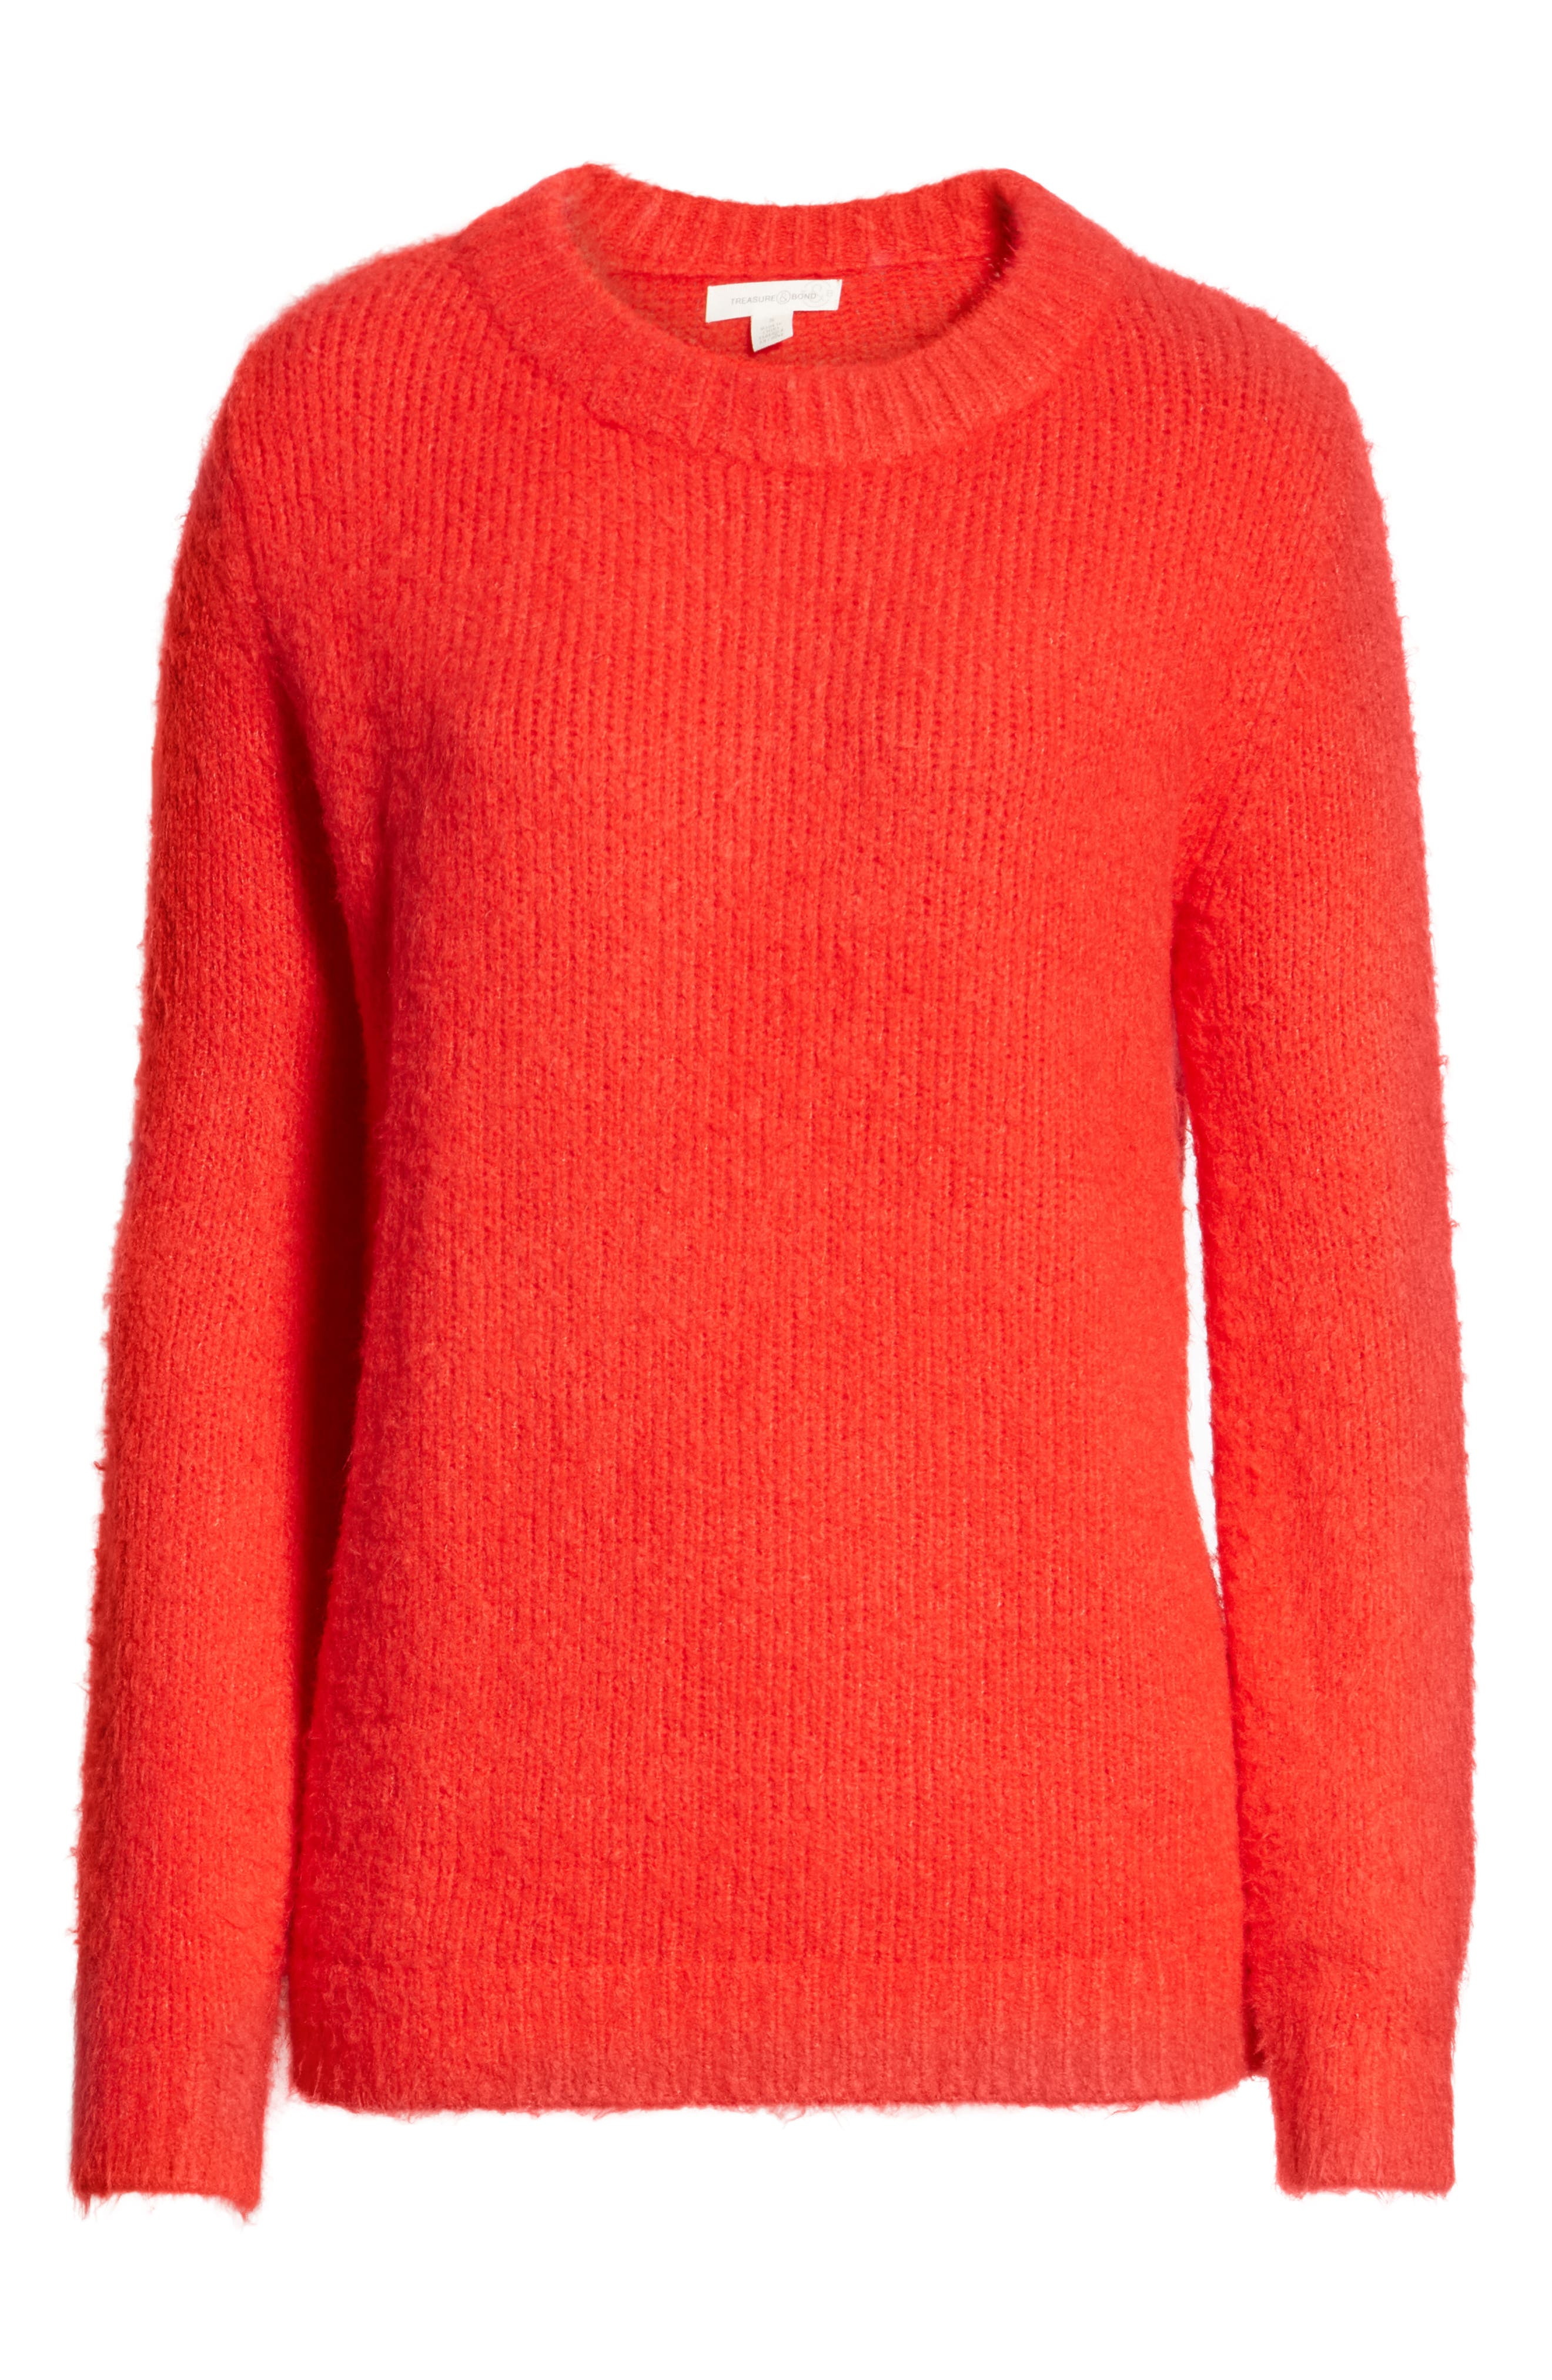 Crewneck Sweater,                             Alternate thumbnail 6, color,                             RED CHINOISE